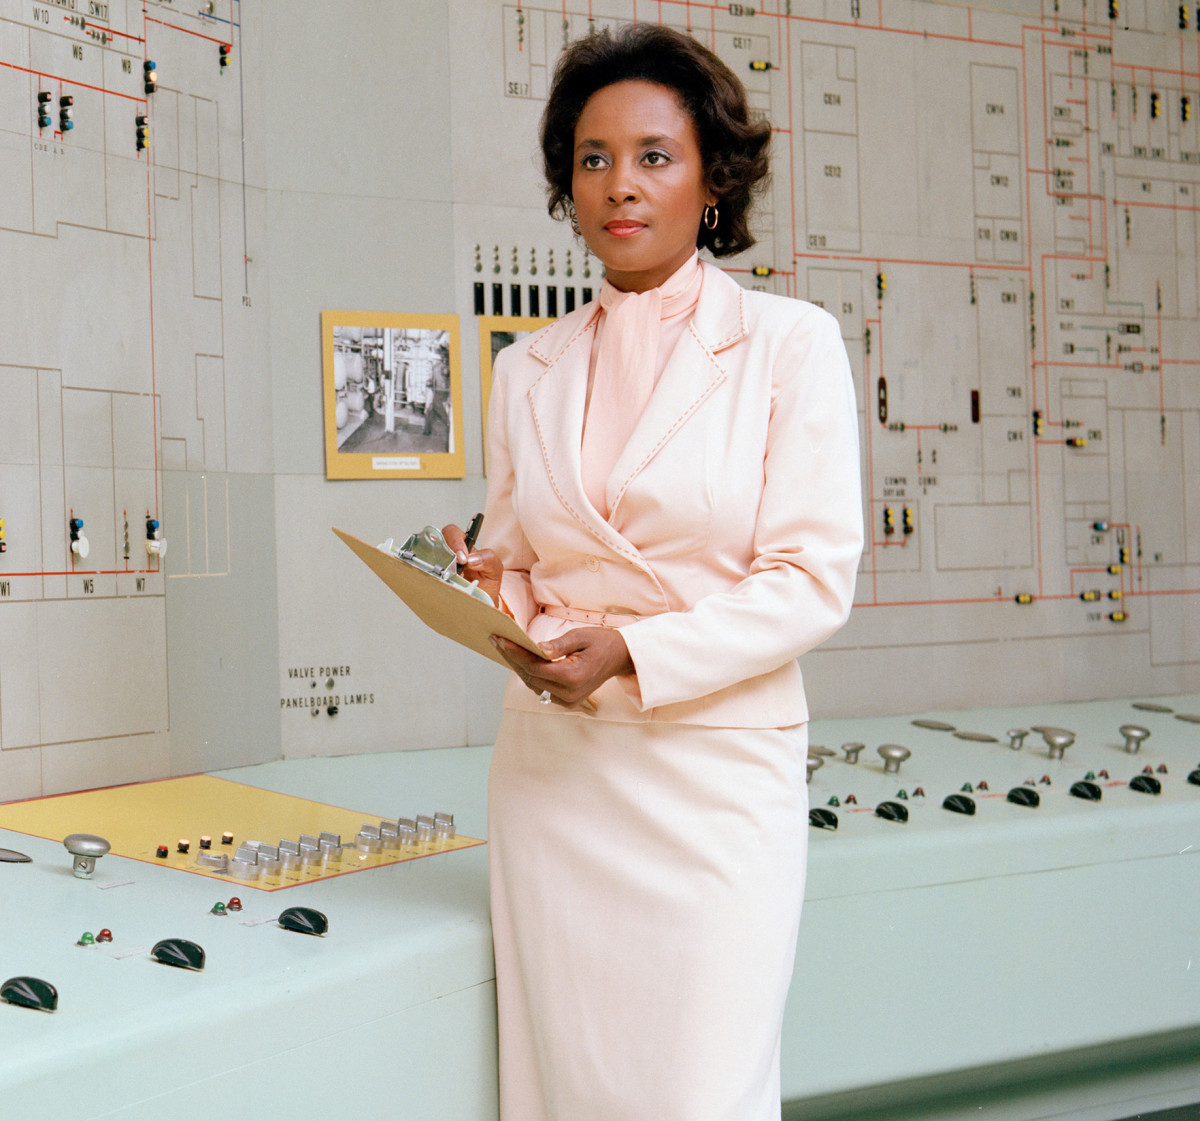 annie-easley-1933---2011-at-nasa-national-aeronautics-and-space-administration-lewis-research-center-later-glenn-research-center-brook-park-ohio-1960s-photo-by-nasainterim-archivesgetty-images.jpg?profile=RESIZE_710x